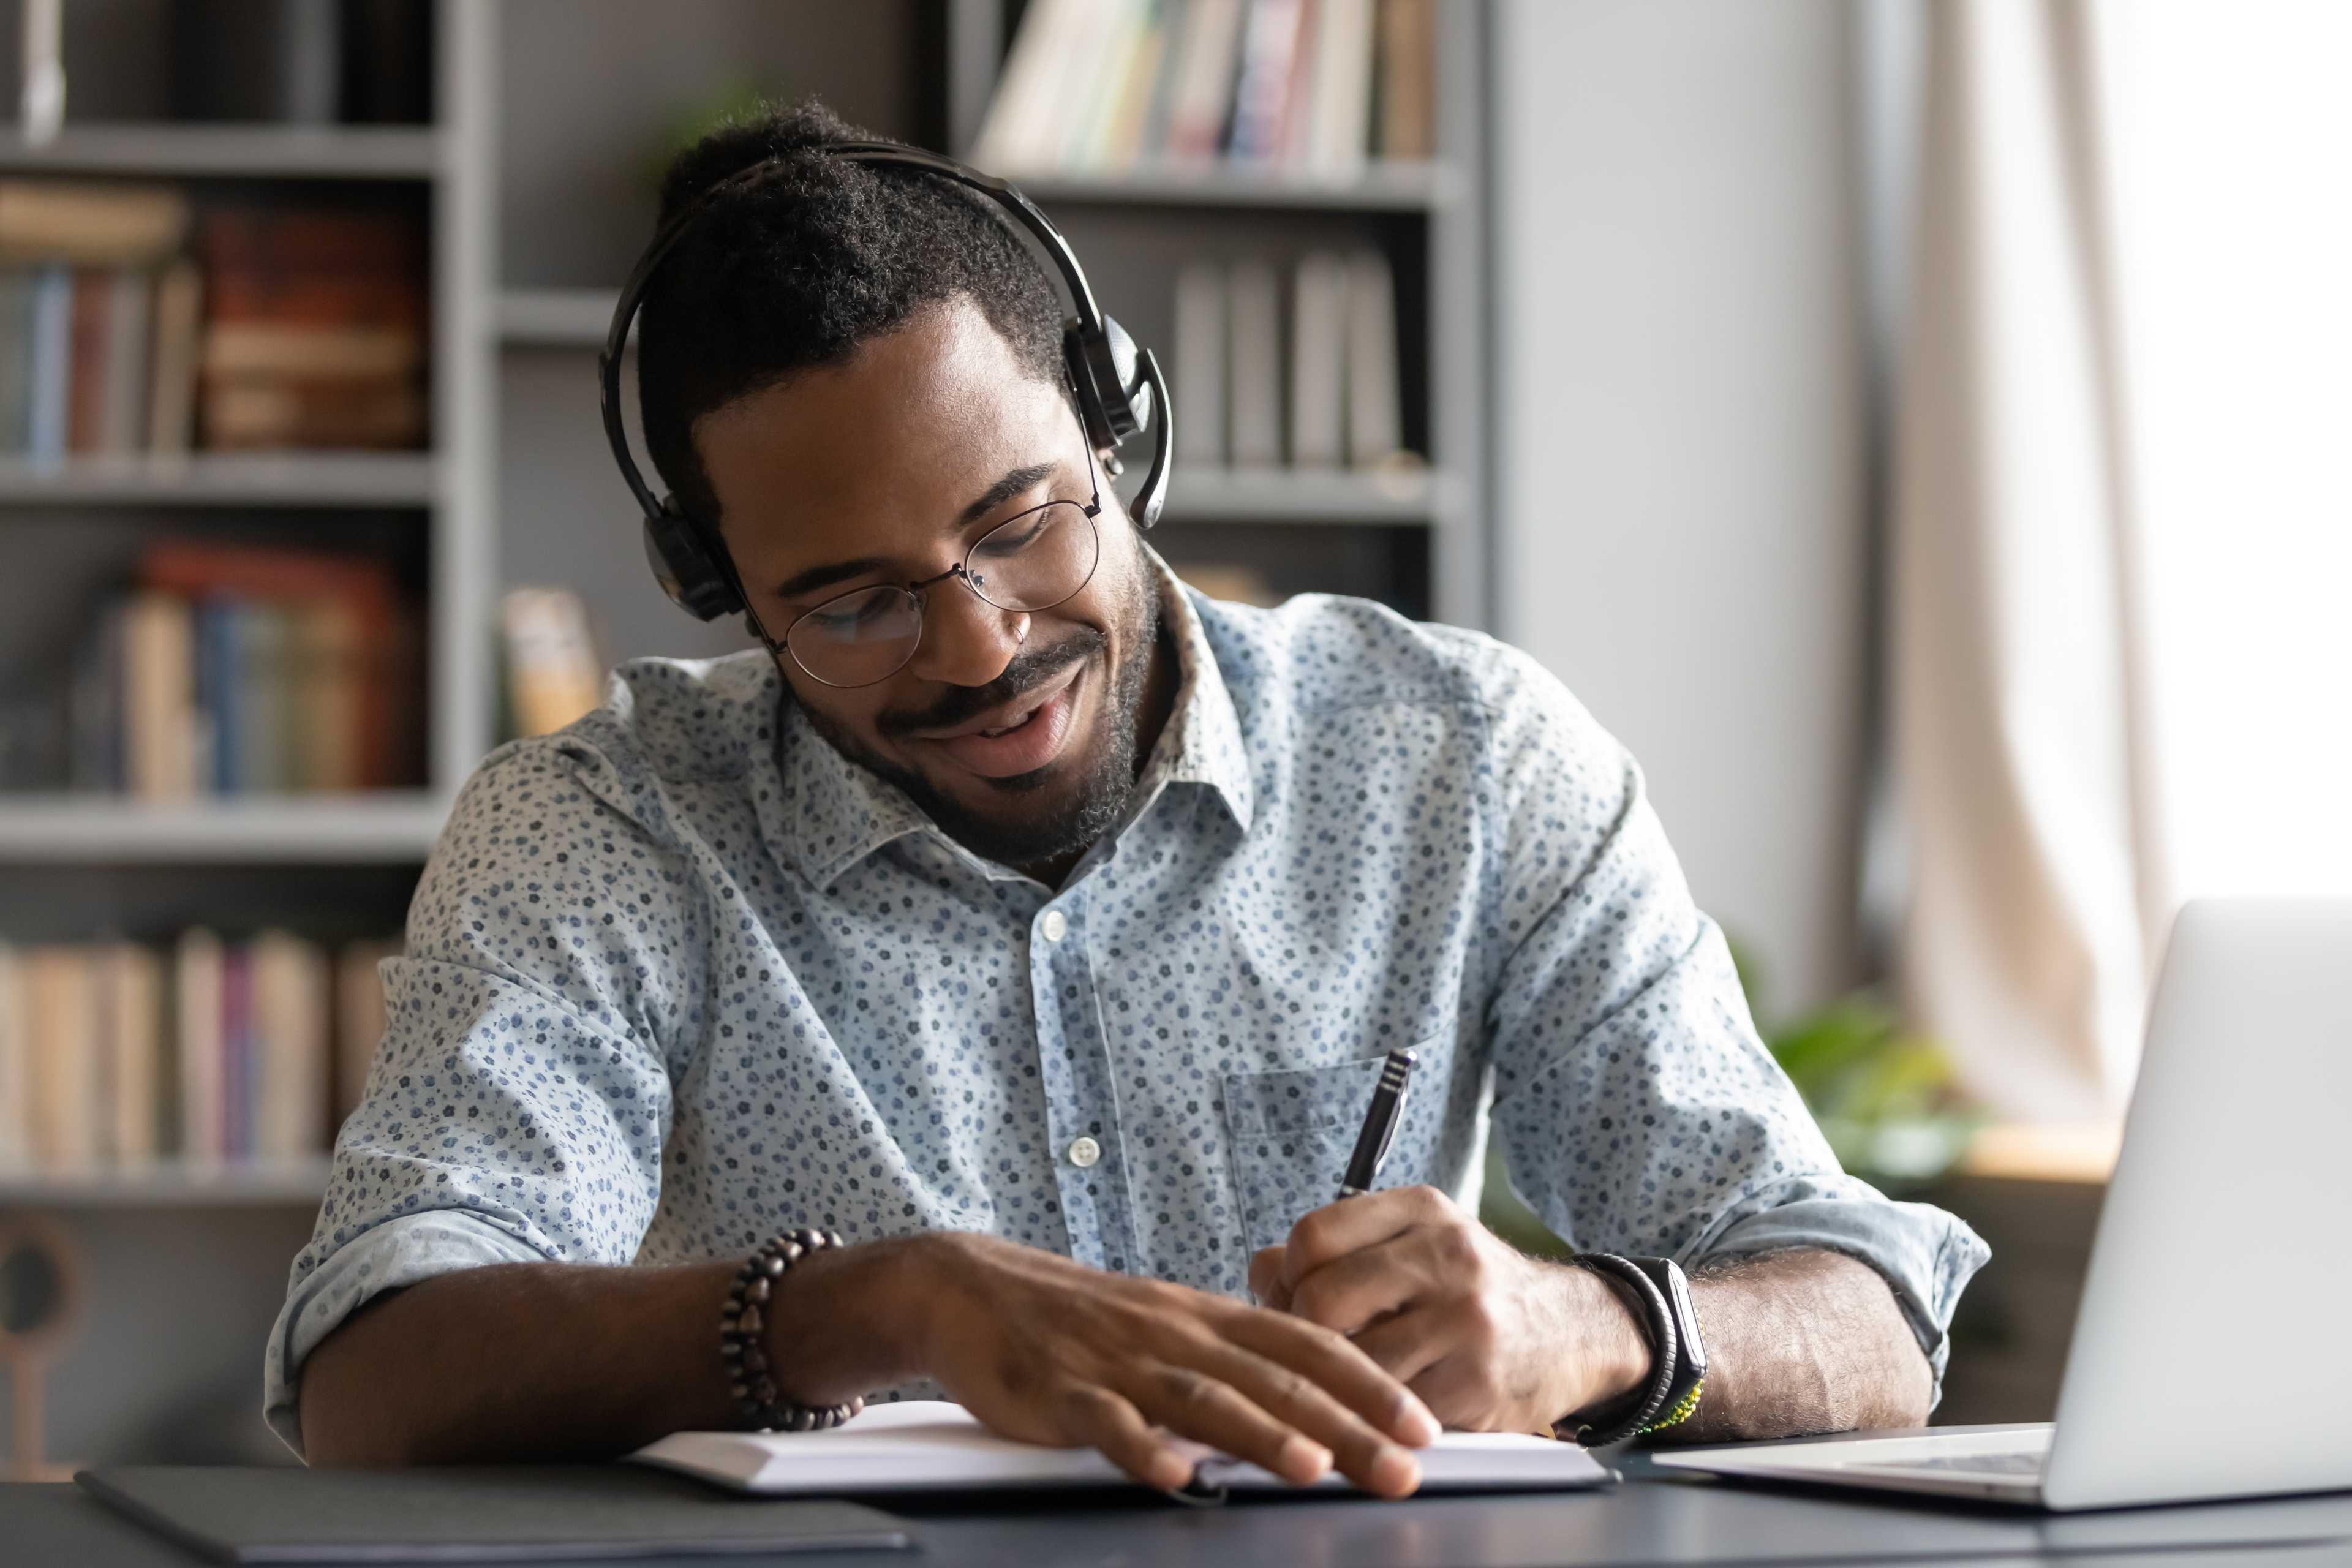 EY - Man with headphones writing notes